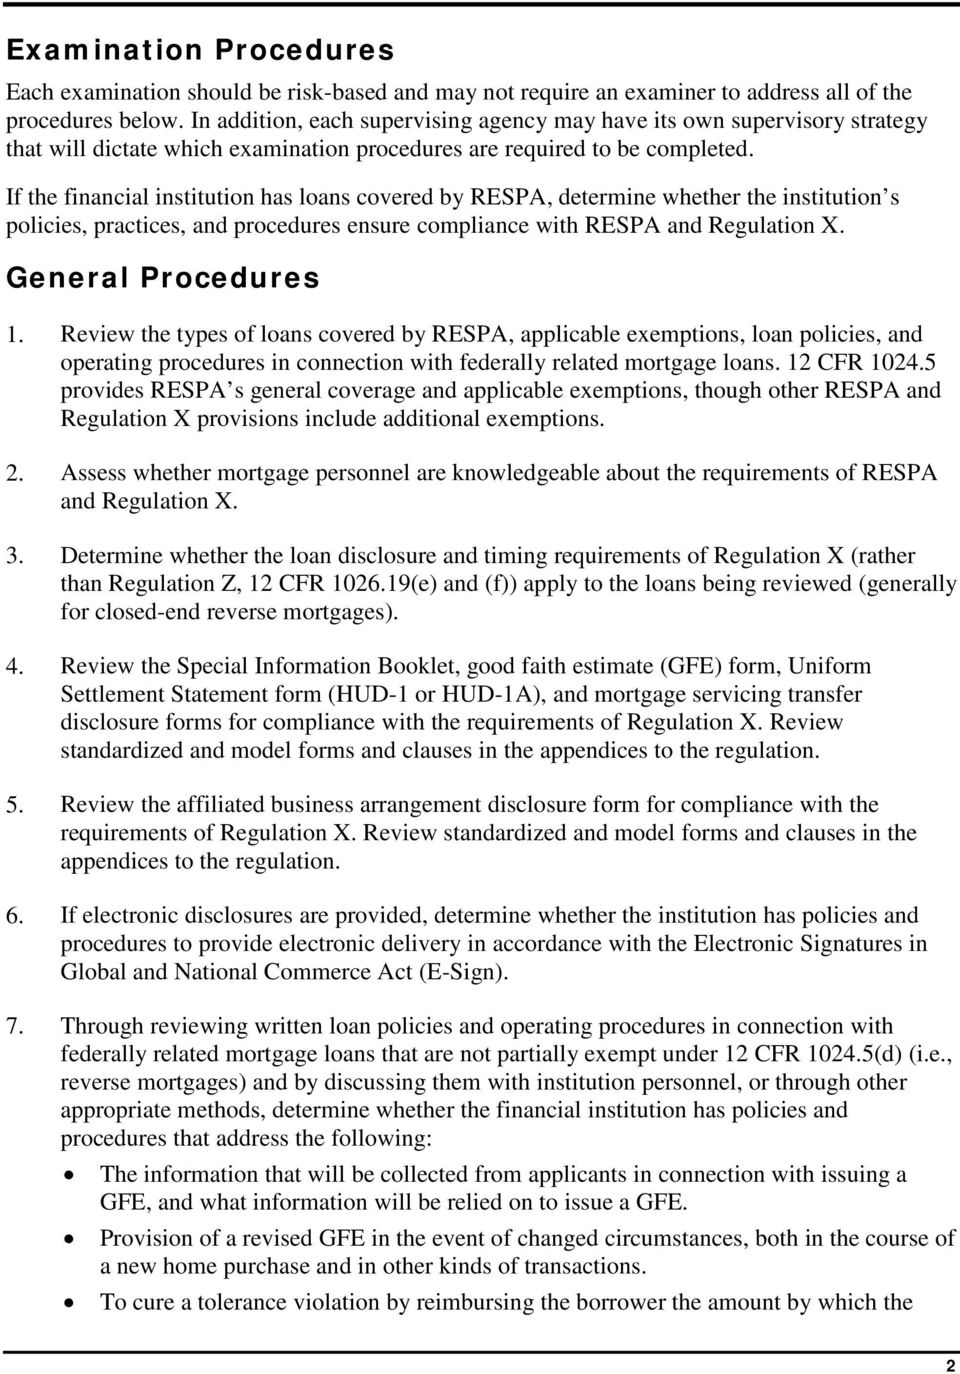 If the financial institution has loans covered by RESPA, determine whether the institution s policies, practices, and procedures ensure compliance with RESPA and Regulation X. General Procedures 1.